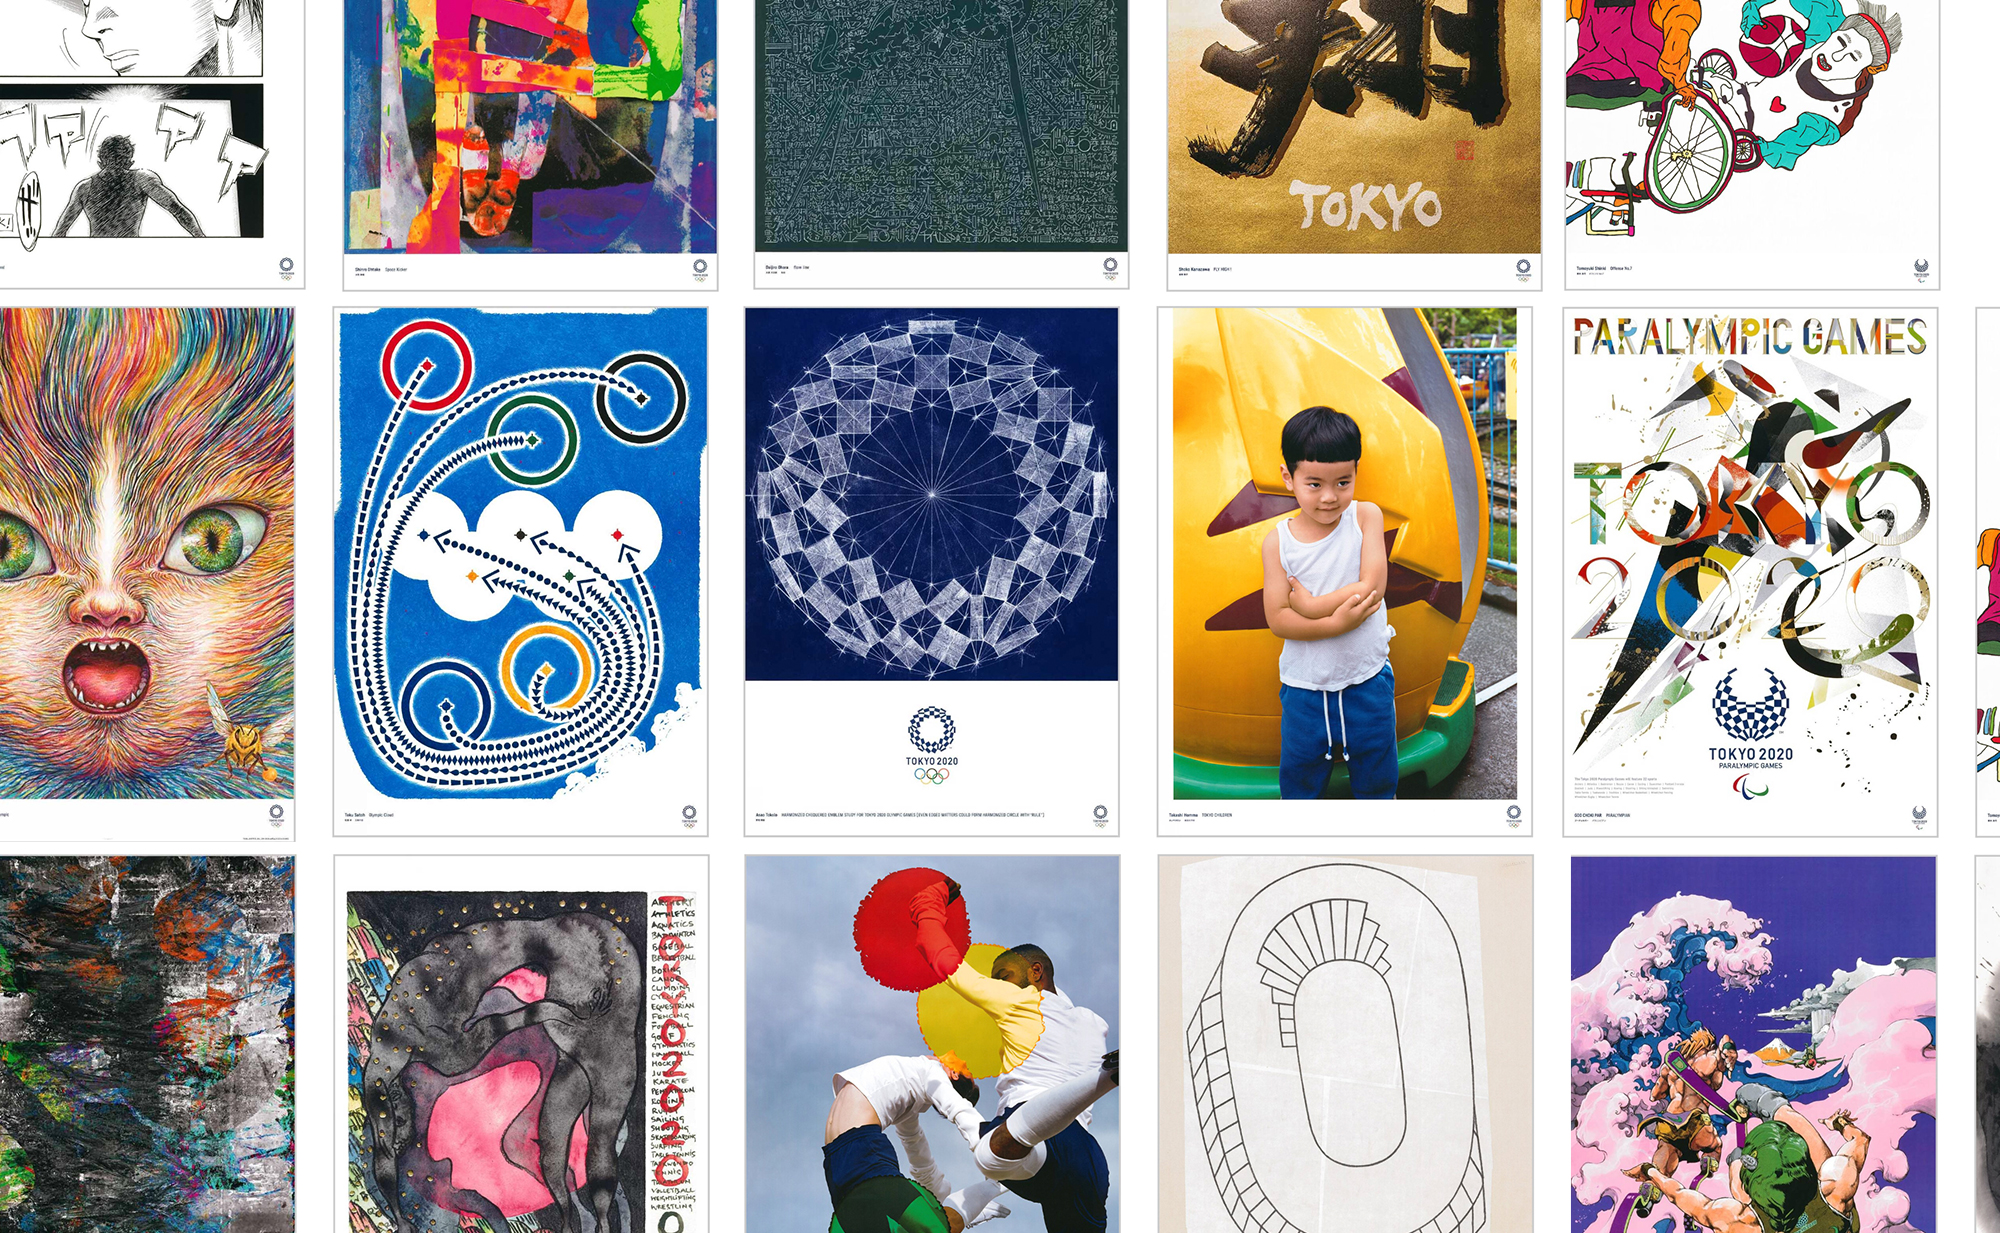 rows of posters created for the 2020 Olympics